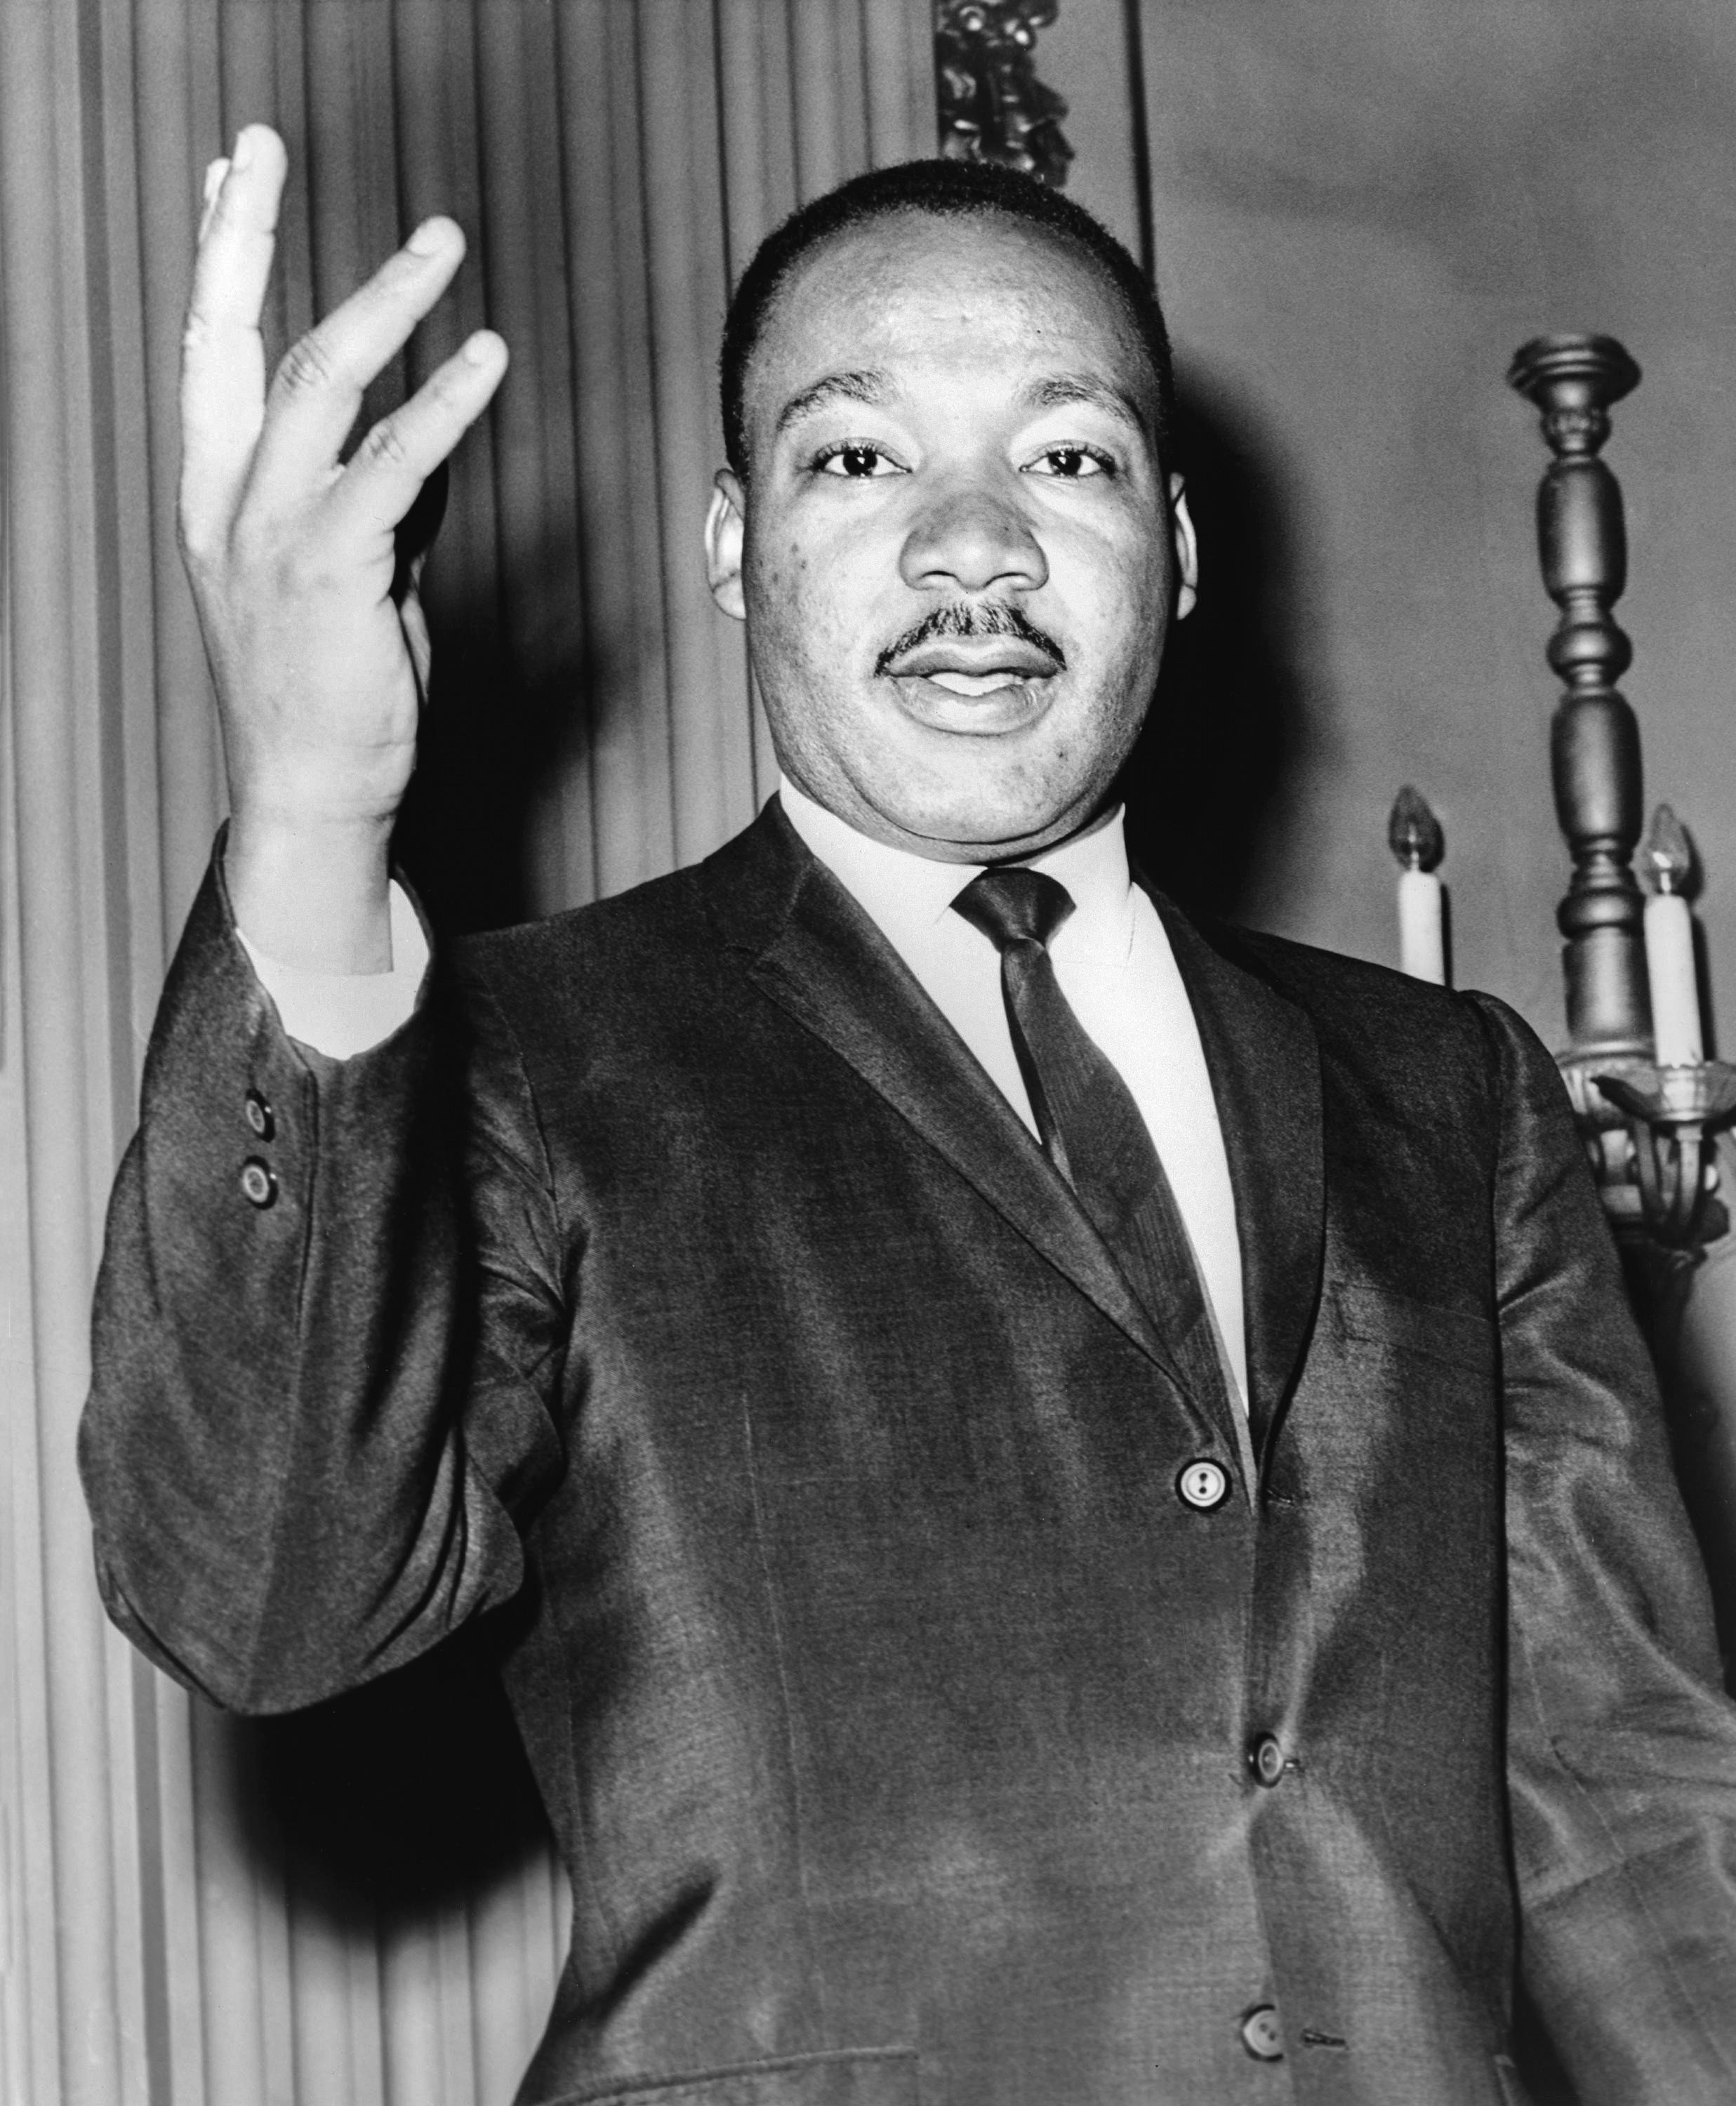 martin luther king - photo #5